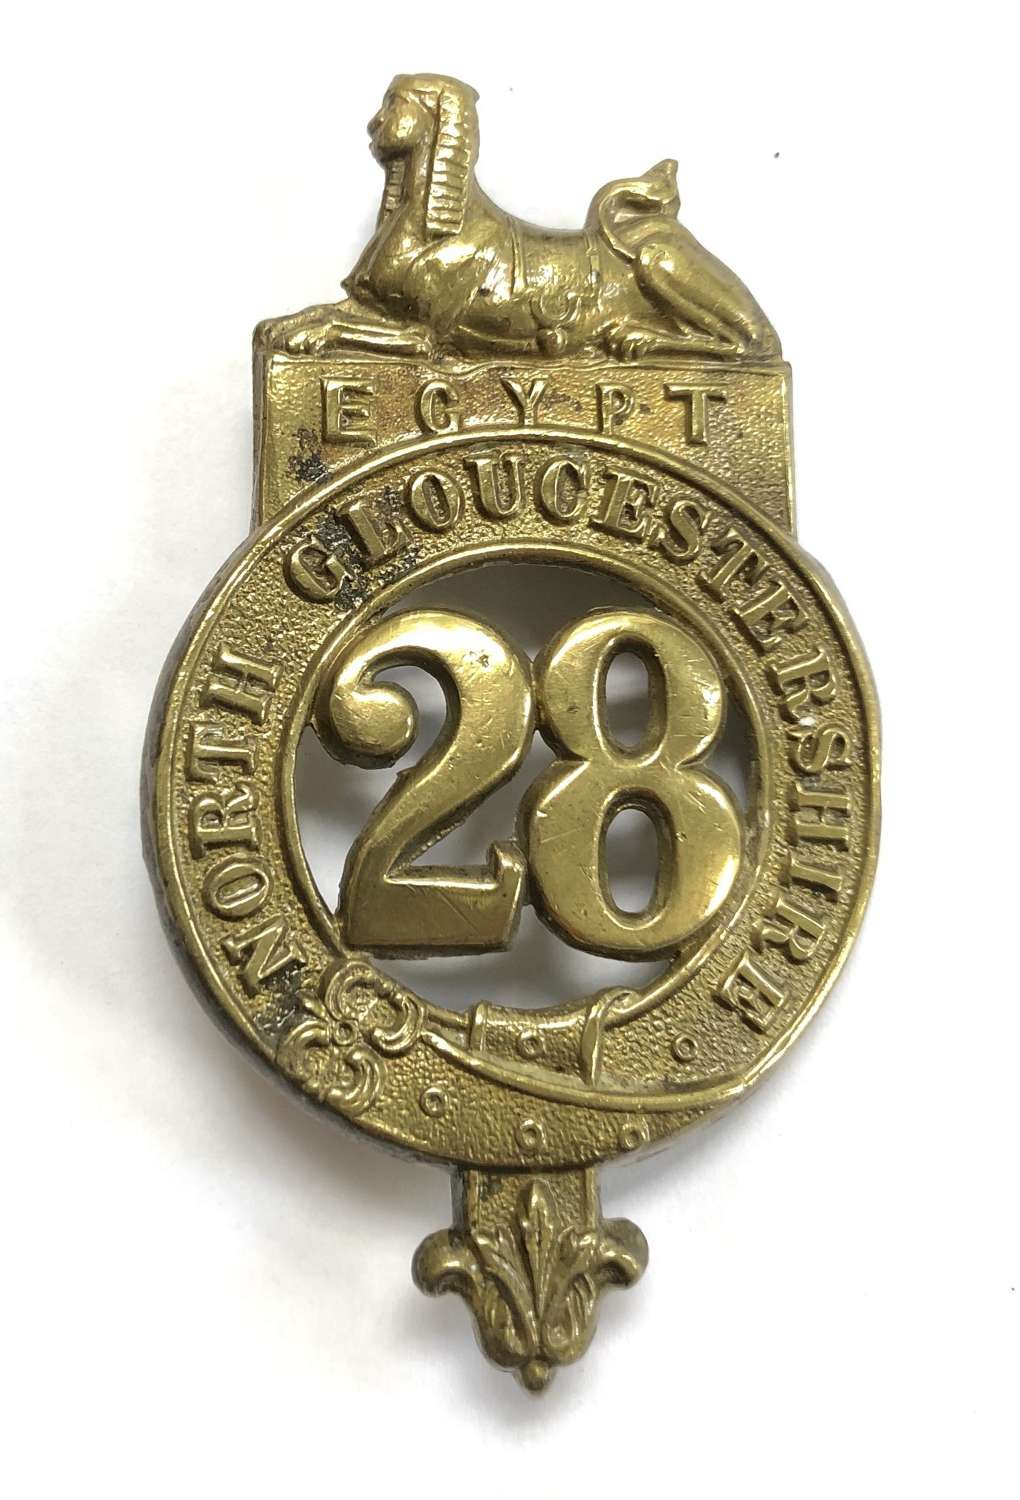 28th (North Gloucestershire) Foot Victorian OR's glengarry badge